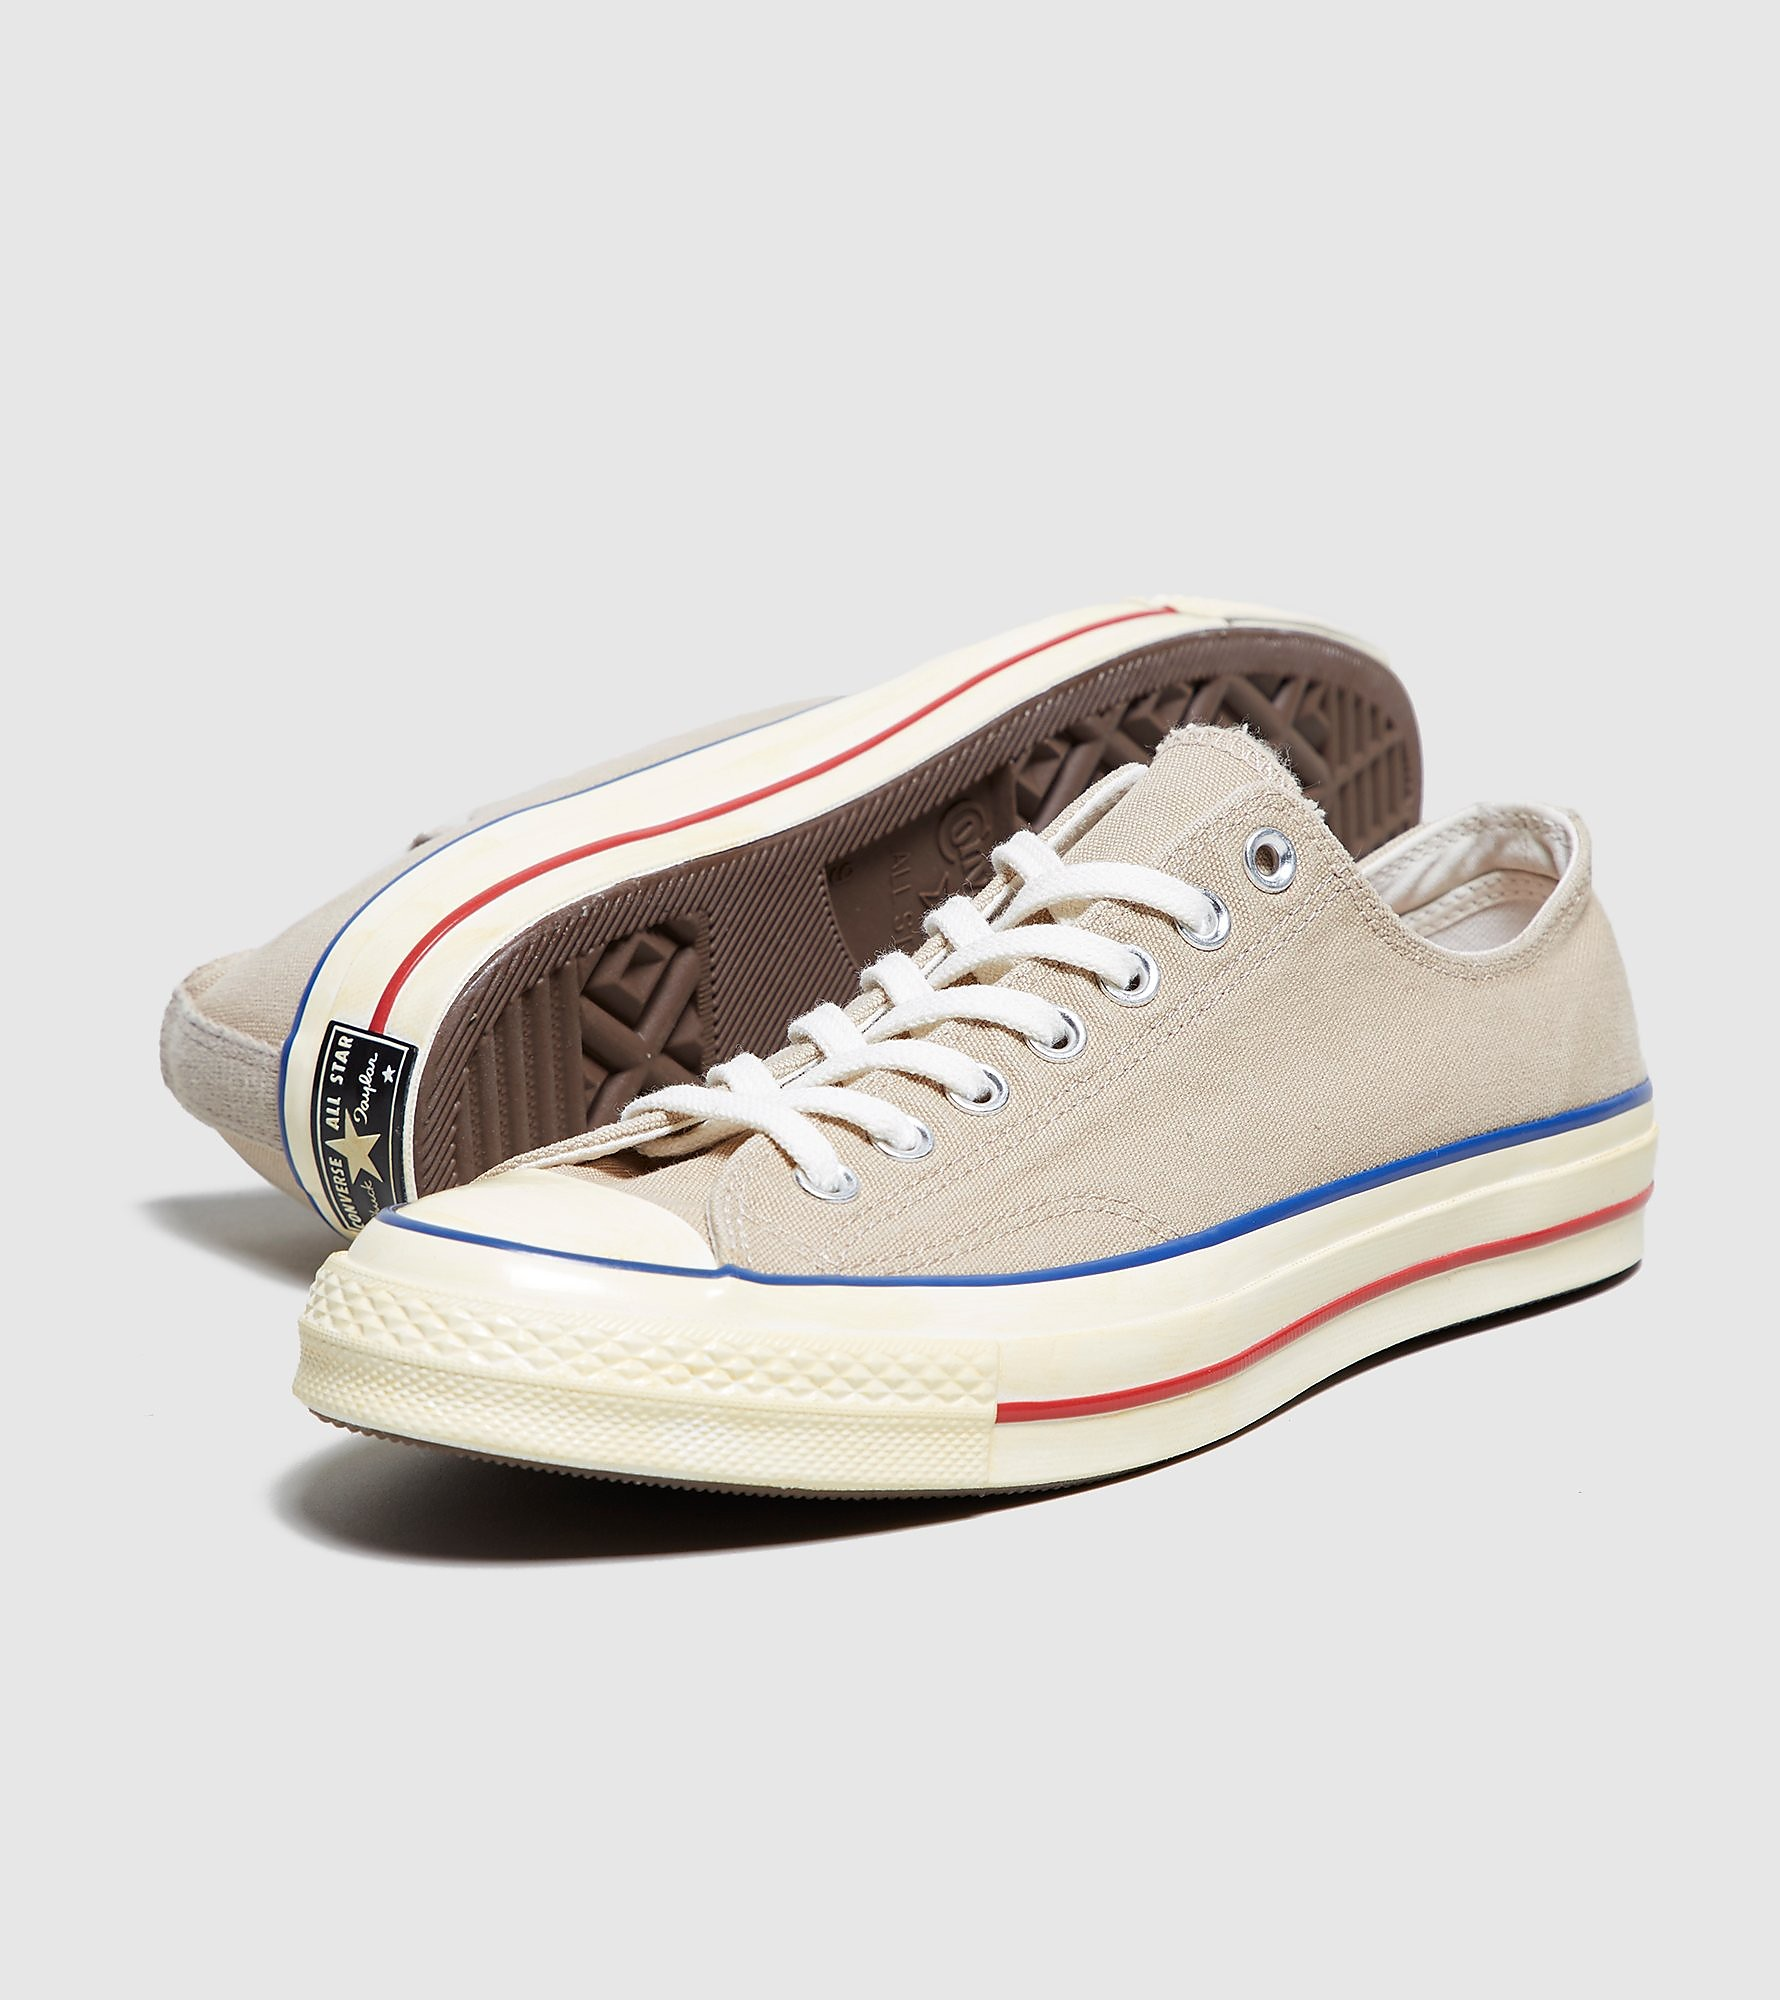 Converse Chuck Taylor All Star '70